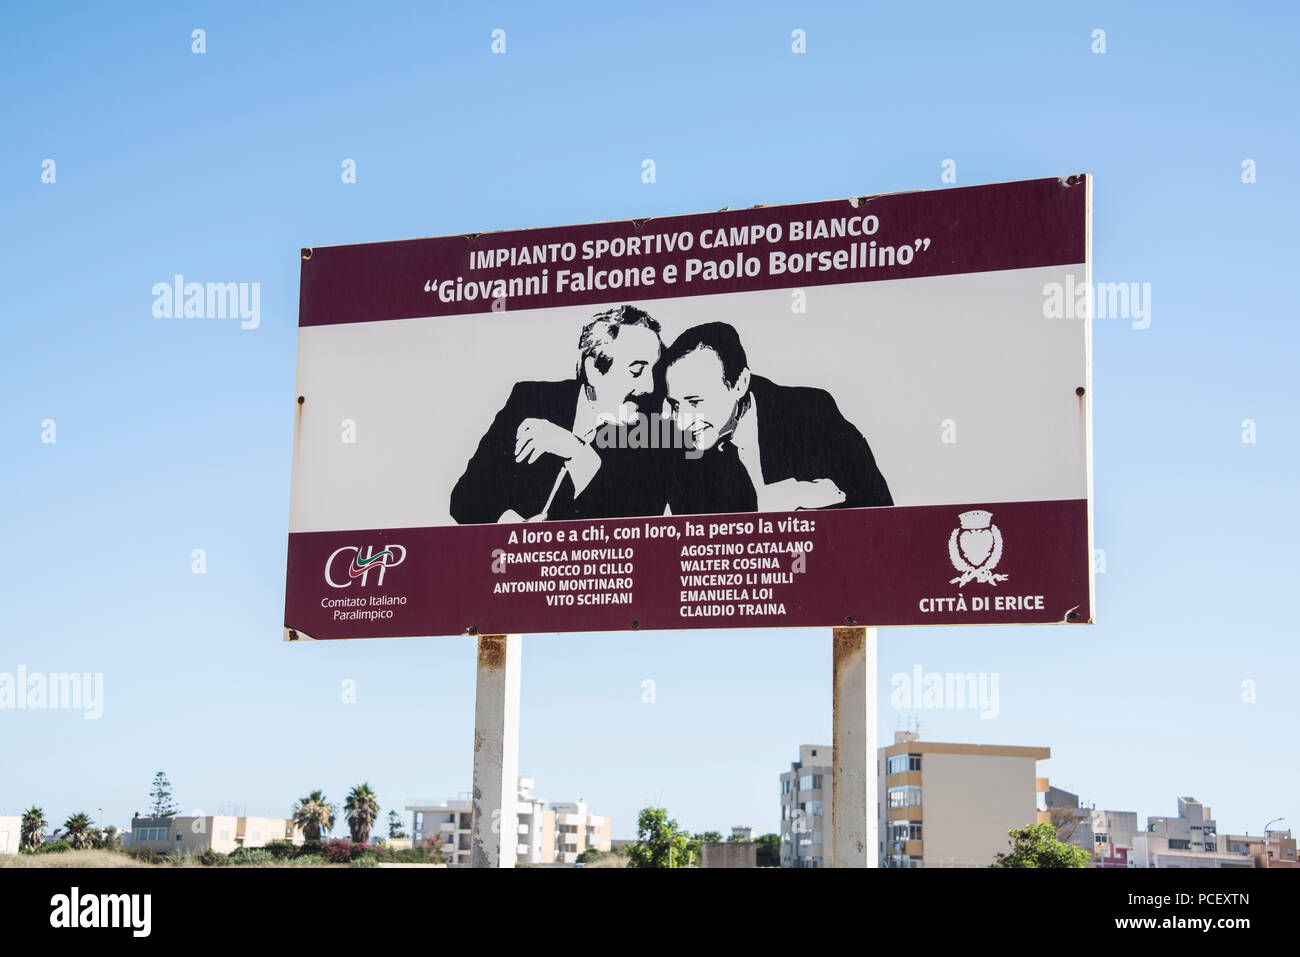 The Falcone Borsellino sports ground with a picture of the two anti-mafia judges after which it was named, Erice, Sicily - Stock Image